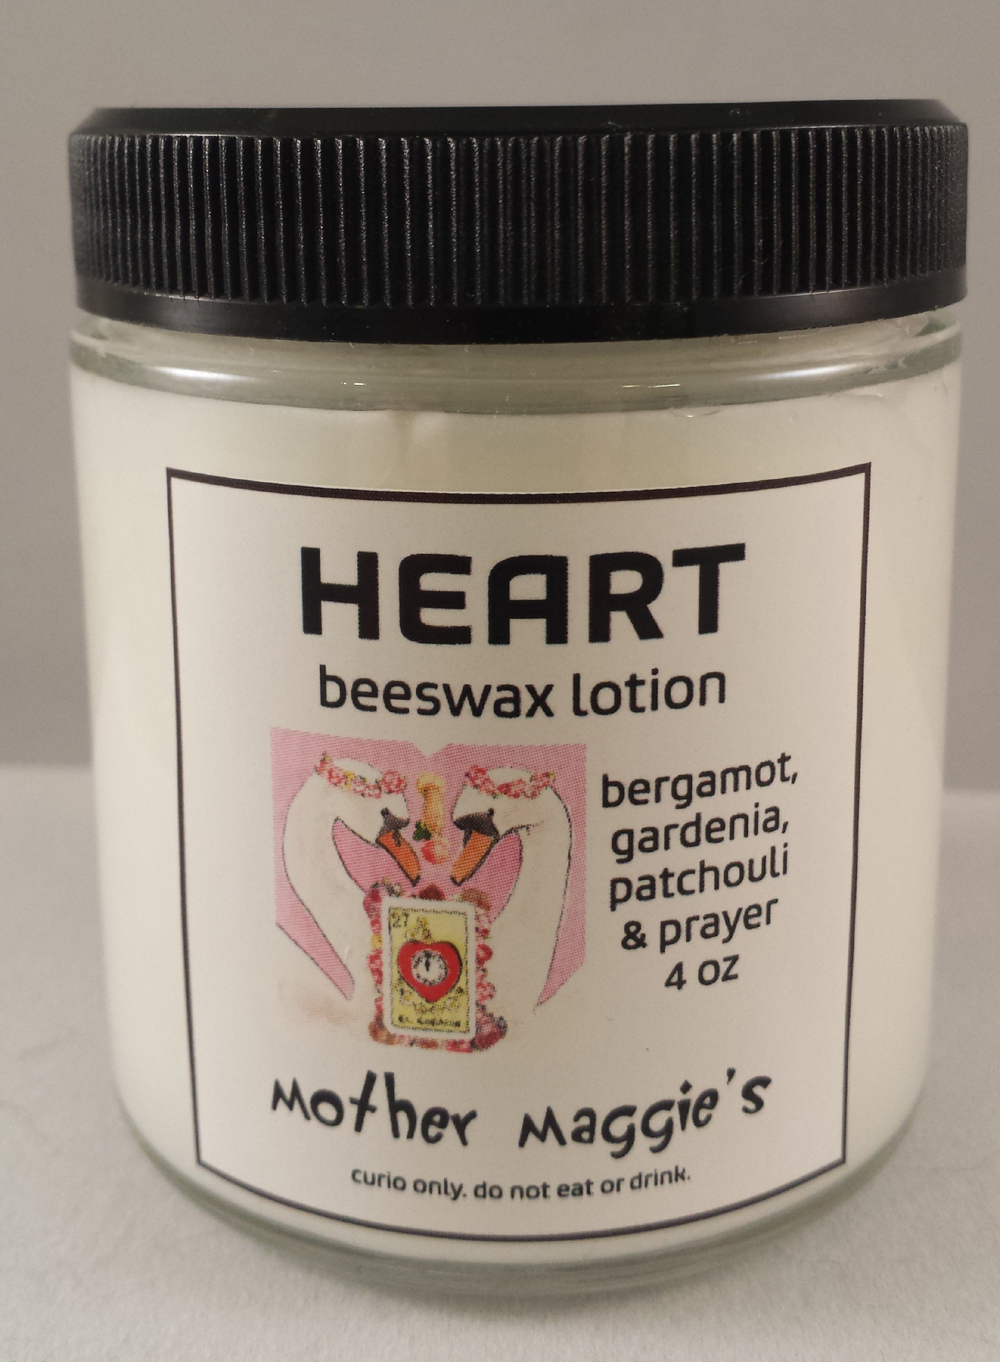 Mother Maggie's Condition Beeswax Lotion